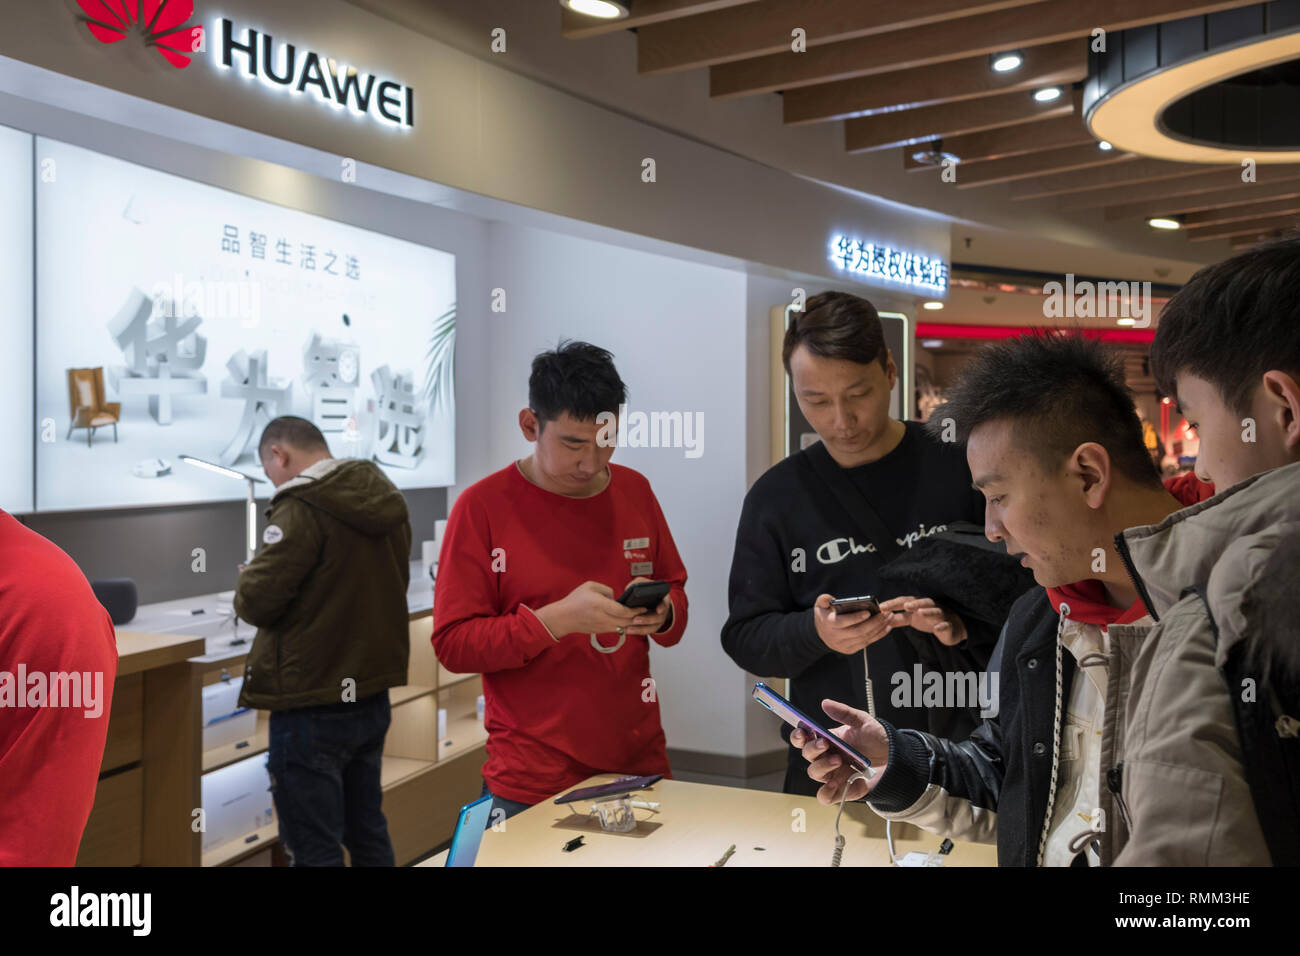 Visitors try out the products in a Huawei store in Beijing, China. 14-Feb-2019 - Stock Image